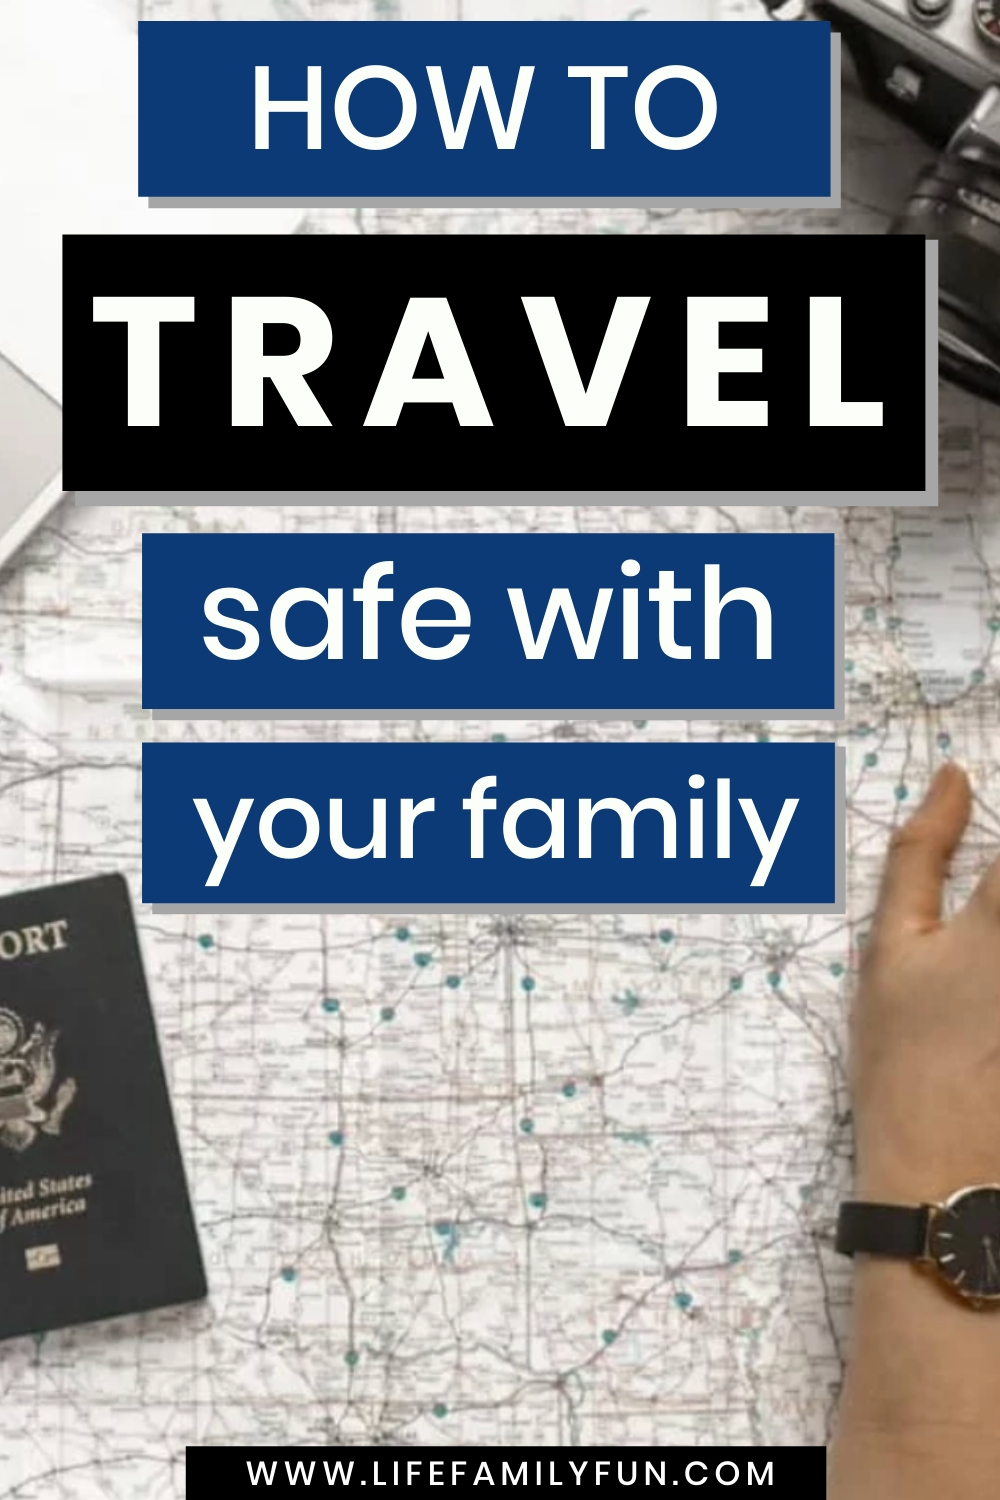 How To Travel Safe With Your Family – 5 Important Travel Tips To Keep In Mind